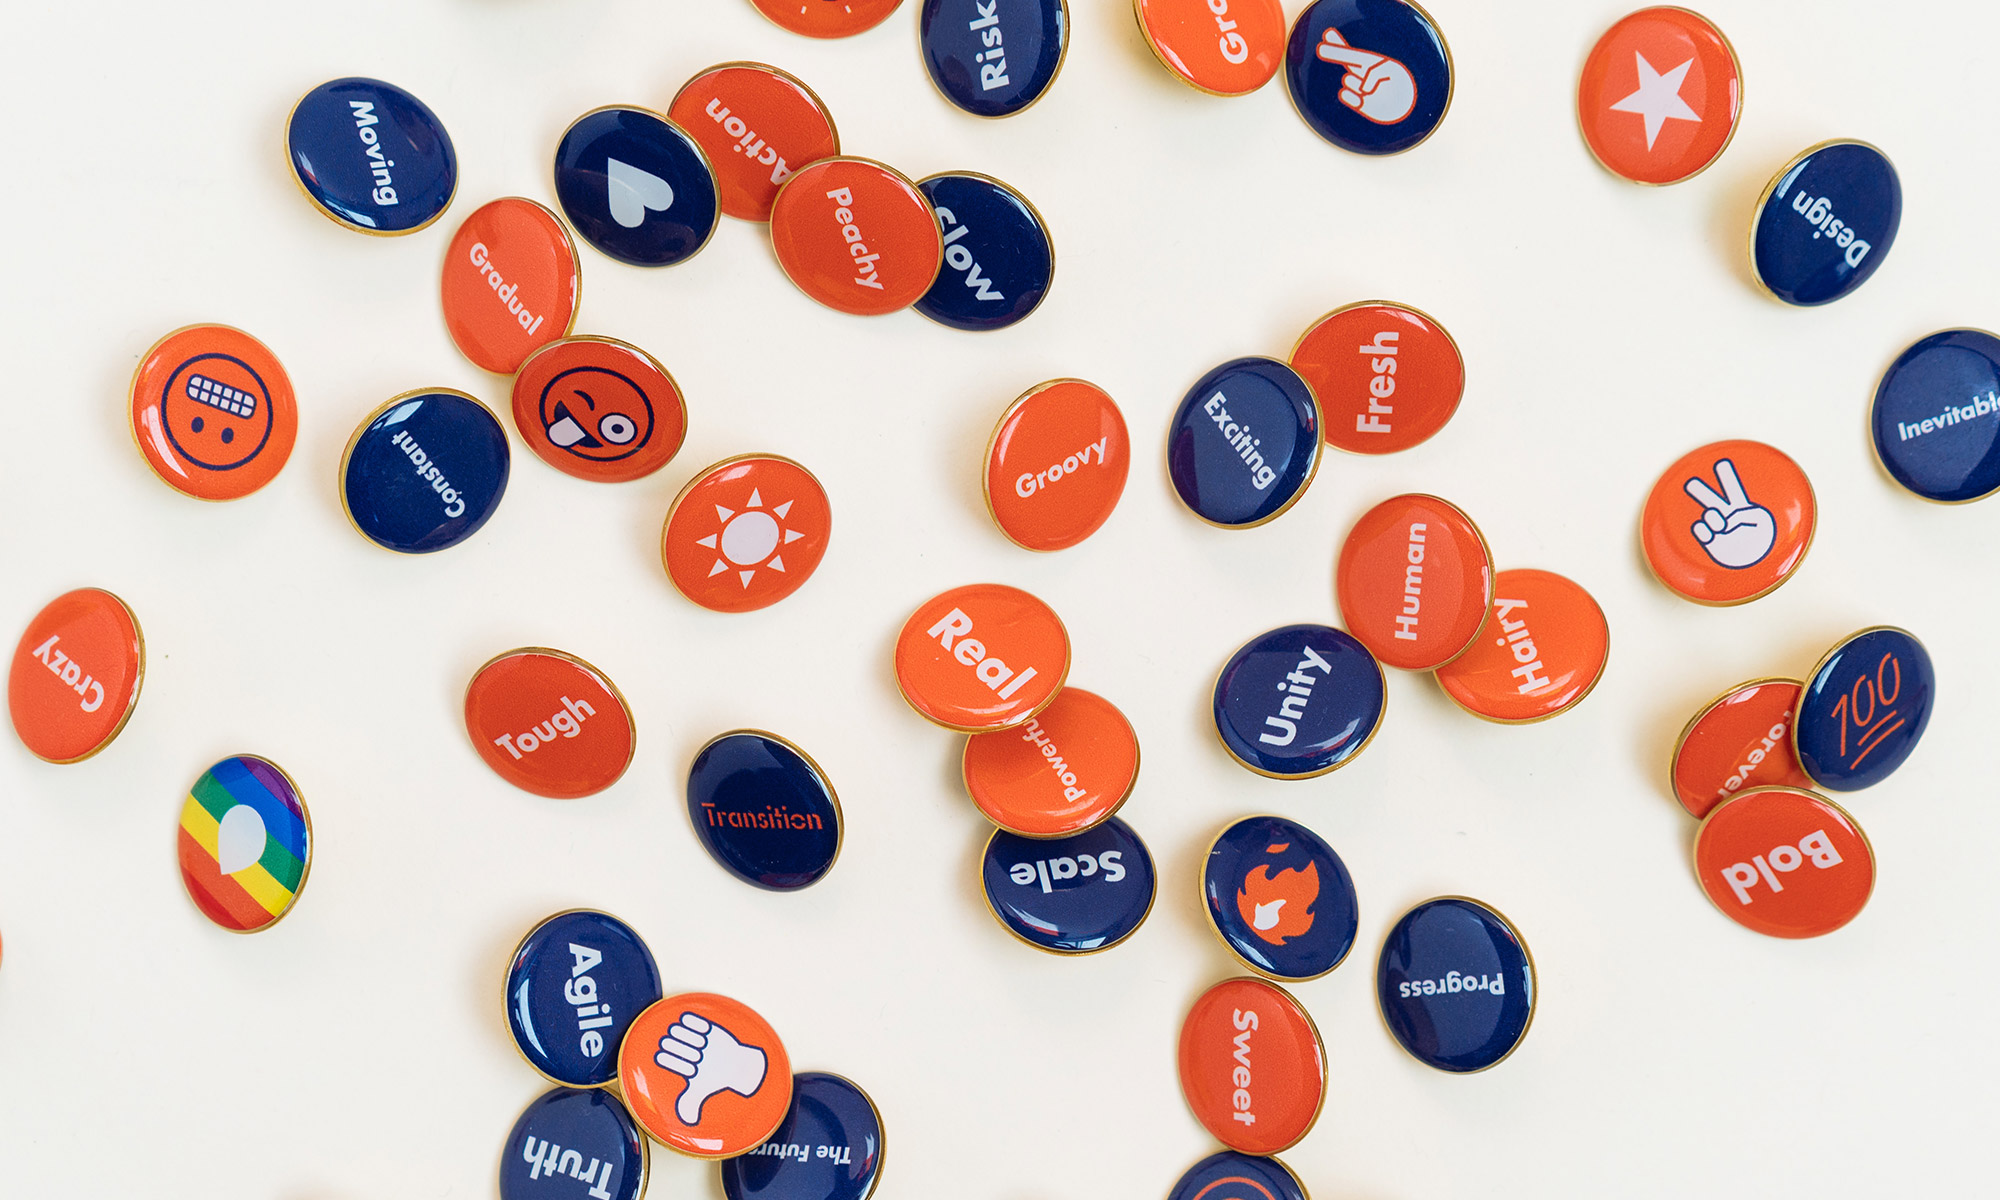 Pins with words and custom designed emojis for attendees to express their feelings about change